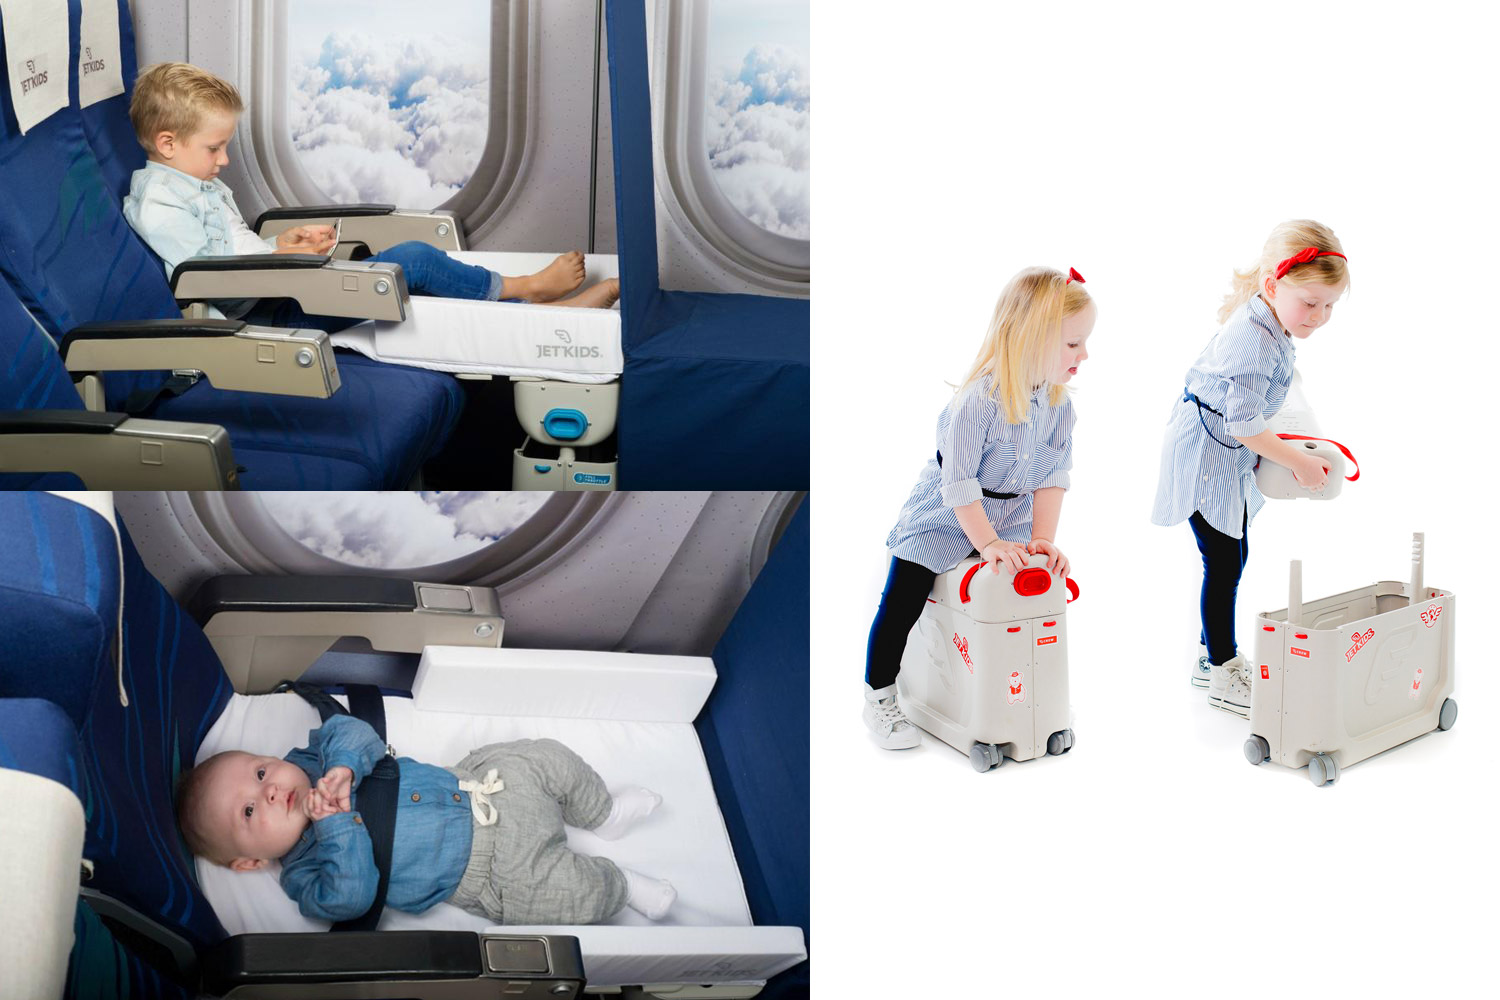 Toddler Mattress Vs Baby Mattress The Best Toddler Bed For Planes 7 Travel Sleep Tricks For Kids